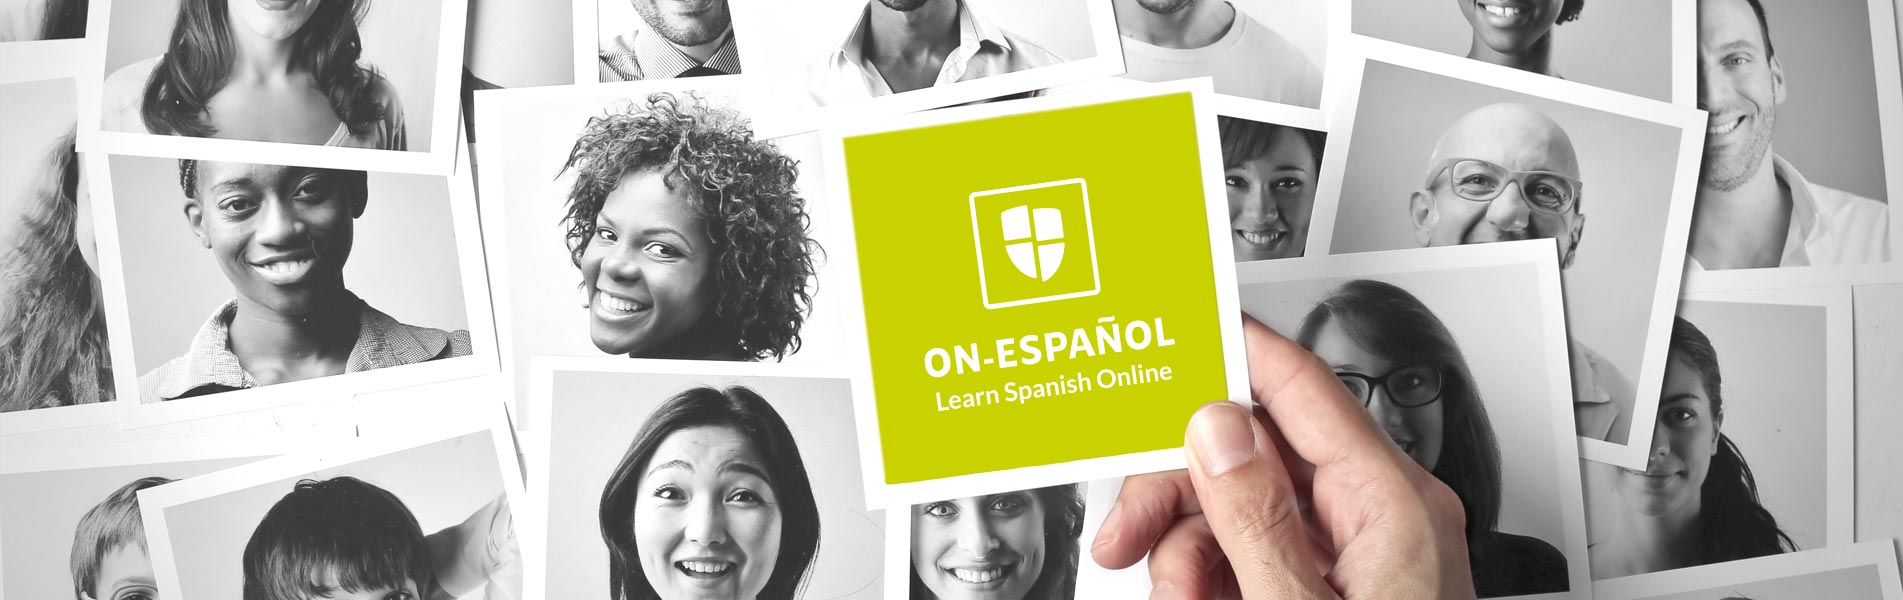 Learn Spanish online With online platform On-Español